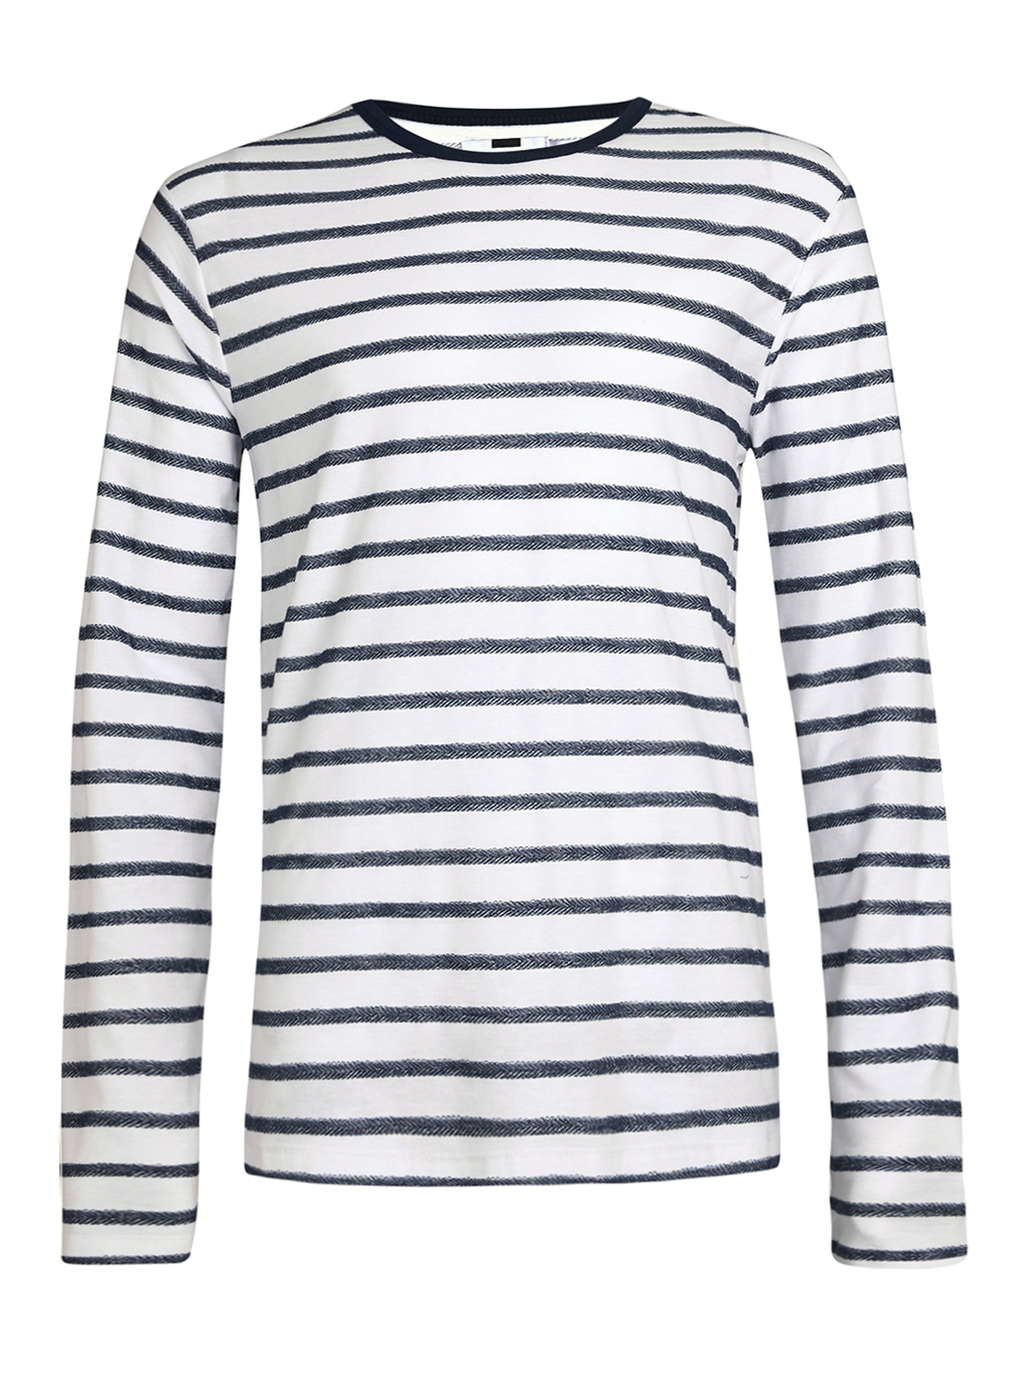 Topman navy white striped long sleeve ringer t shirt in Mens long sleeve white t shirt